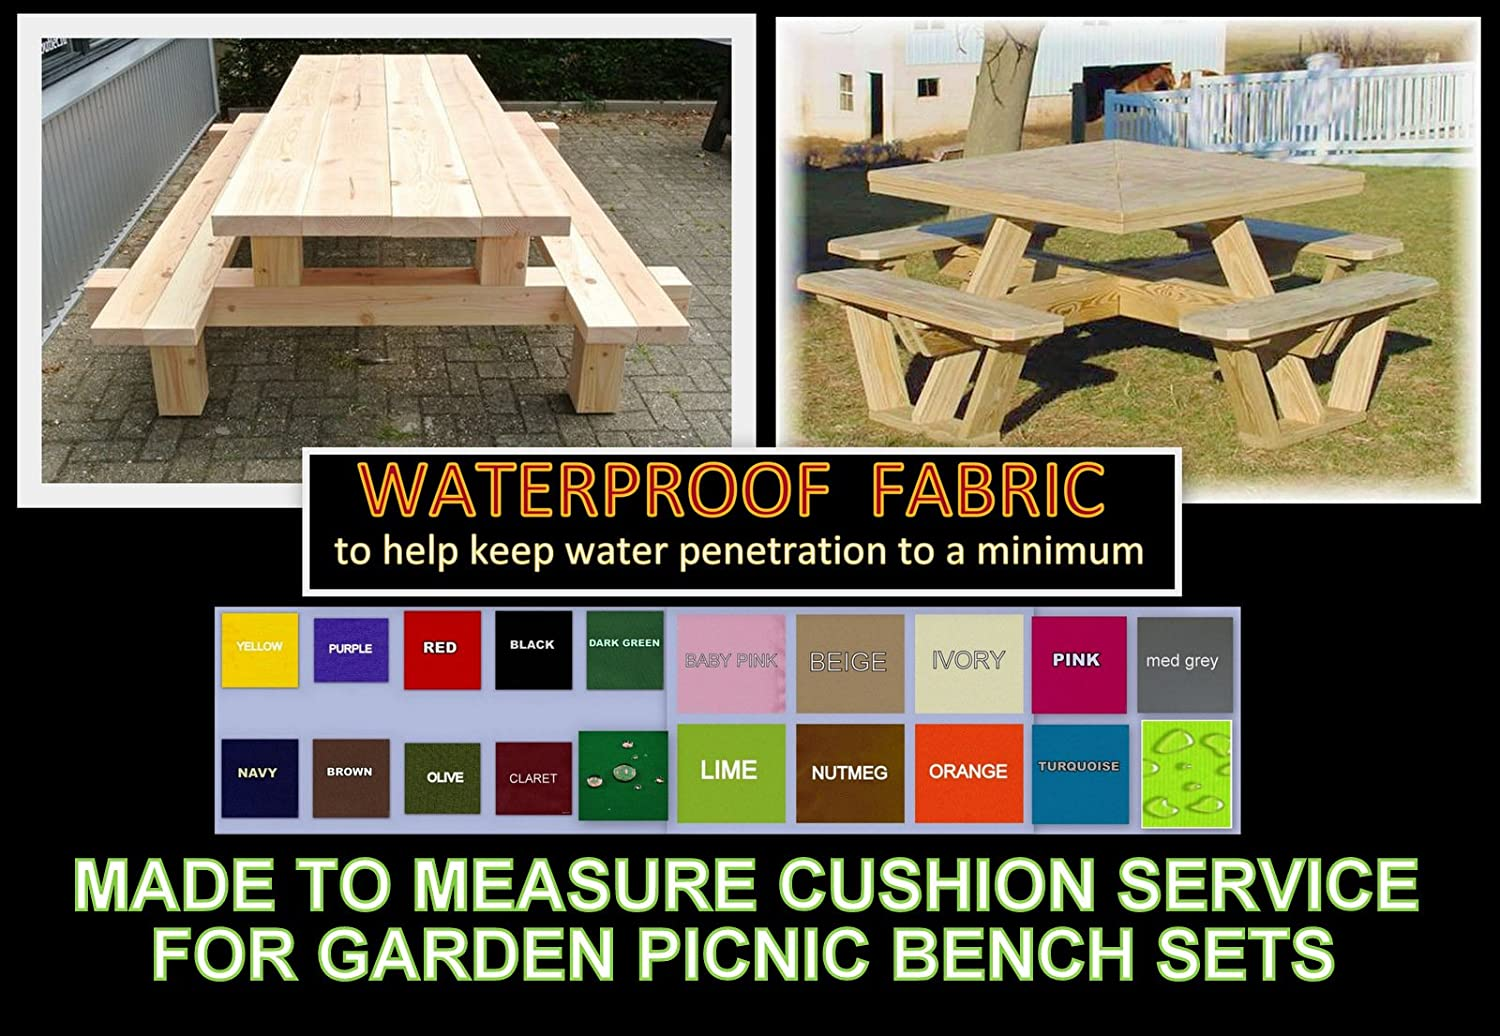 Made to Measure - Quote & Fabric Samples for waterproof Cushions & Covers - Picnic Benches - Pallet Furniture - Rattan Furniture - Garden Furniture - Campervans - Caravans & Boats - Over 20 Colours Zippy UK Ltd